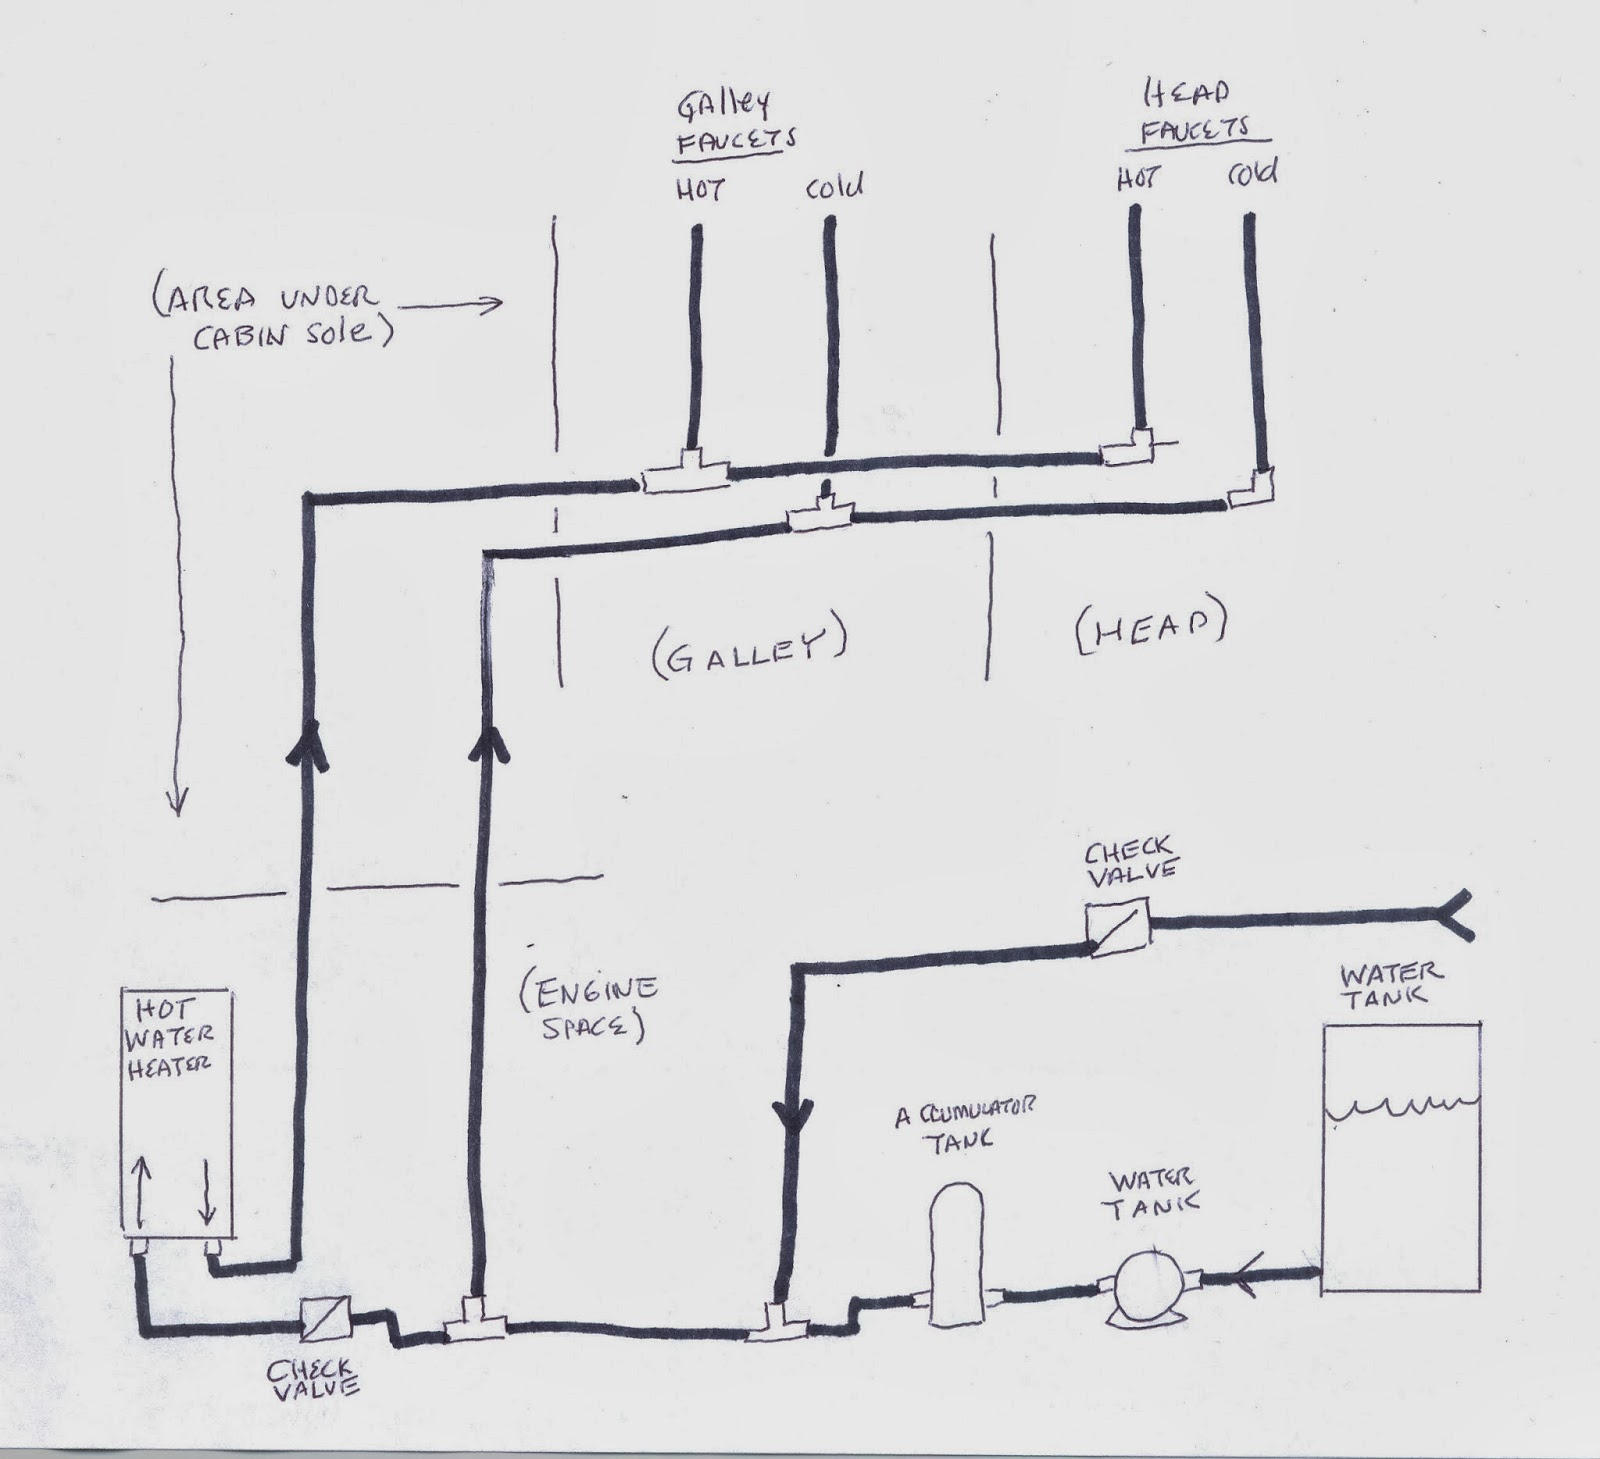 Honeywell Wiring Diagram App in addition Taco Sr501 Wiring Diagram besides Honeywell Zone D Er Wiring Diagram further 84485 Wiring Residential Gas Heating Units in addition Boiler Wiring. on honeywell zone control valve